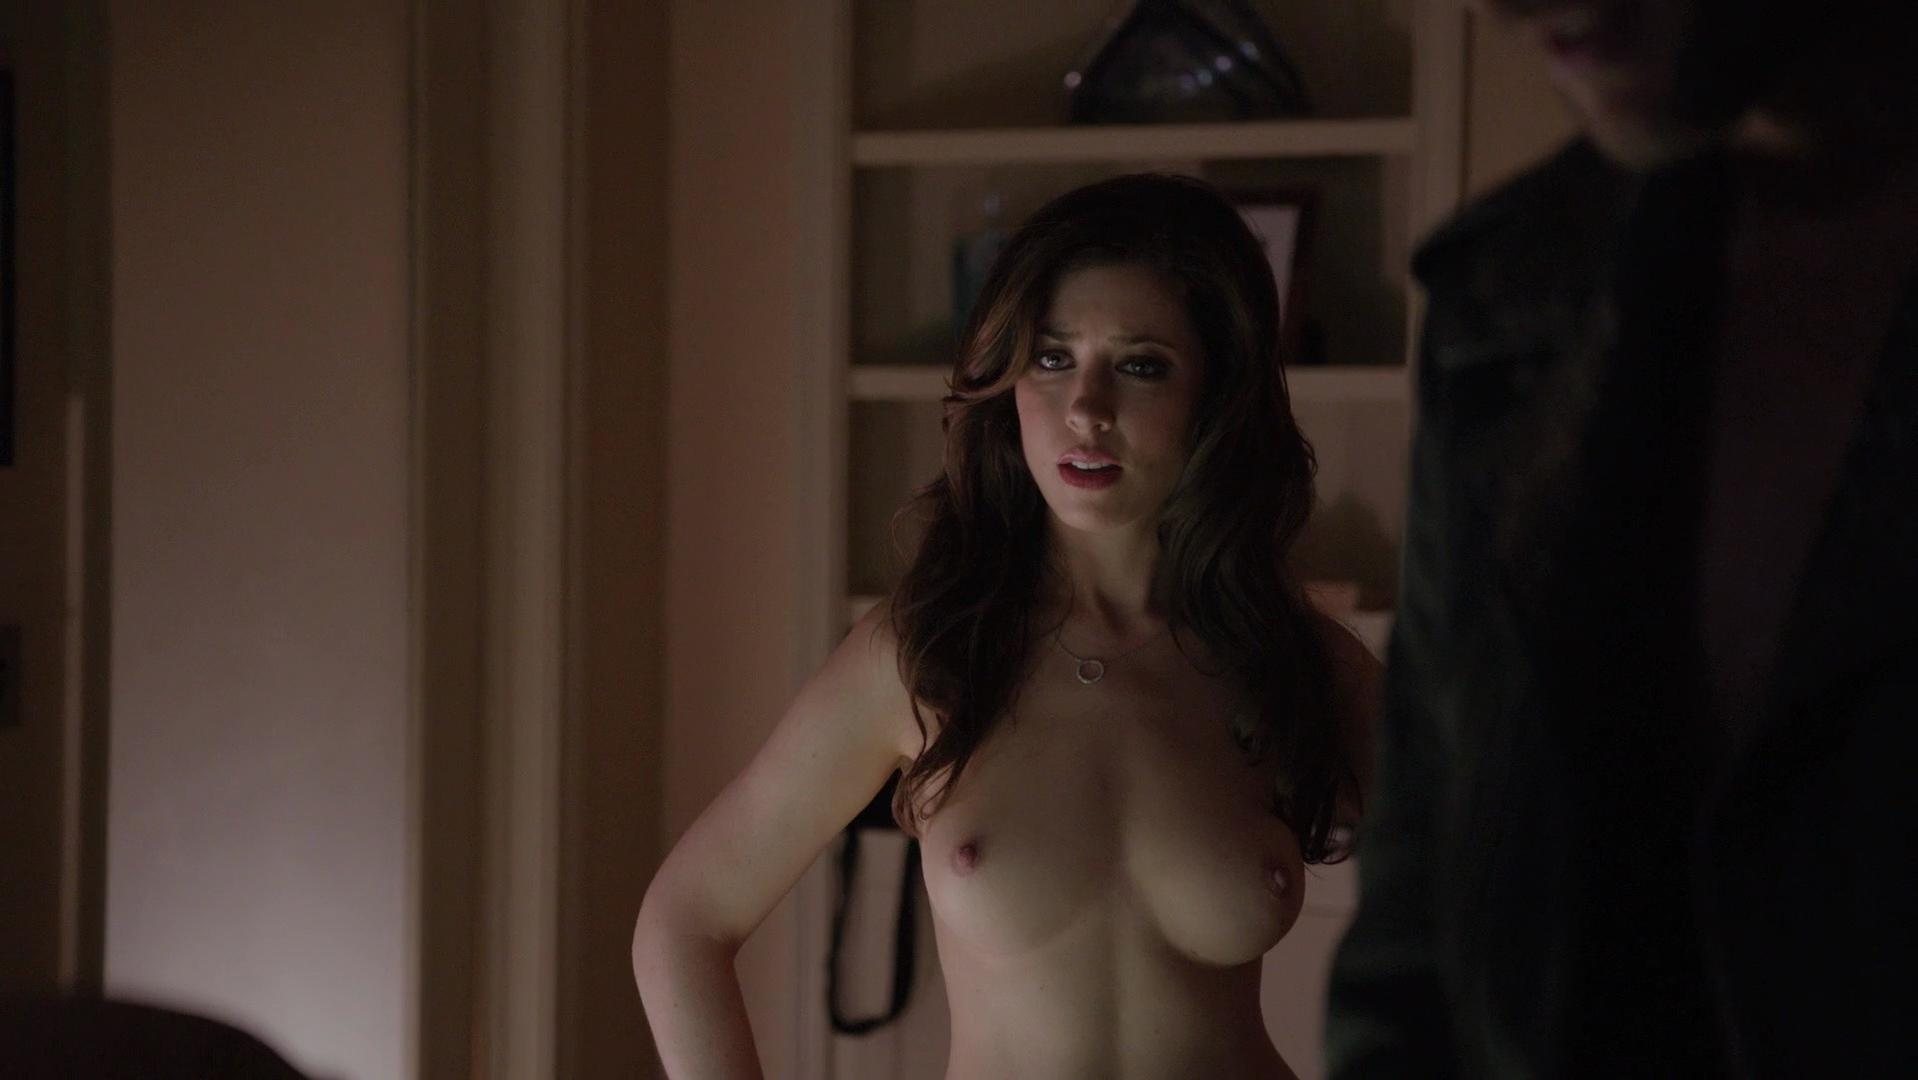 Alissa Dean nude - Californication s06e04 (2013)